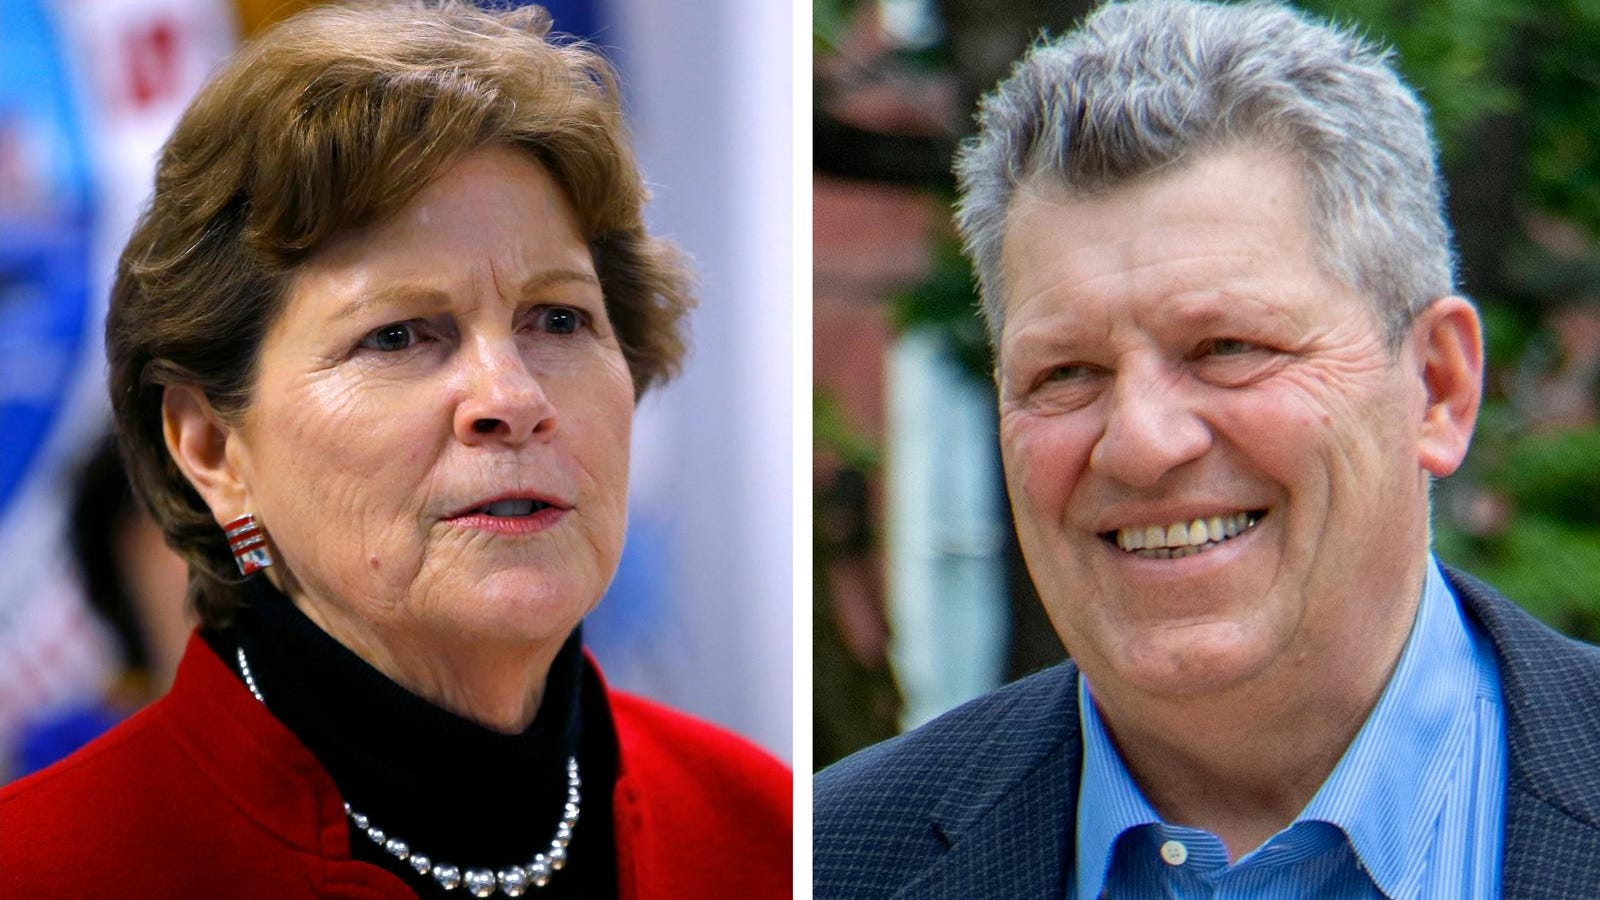 Shaheen, Messner debate Trump's handling of coronavirus in last debate